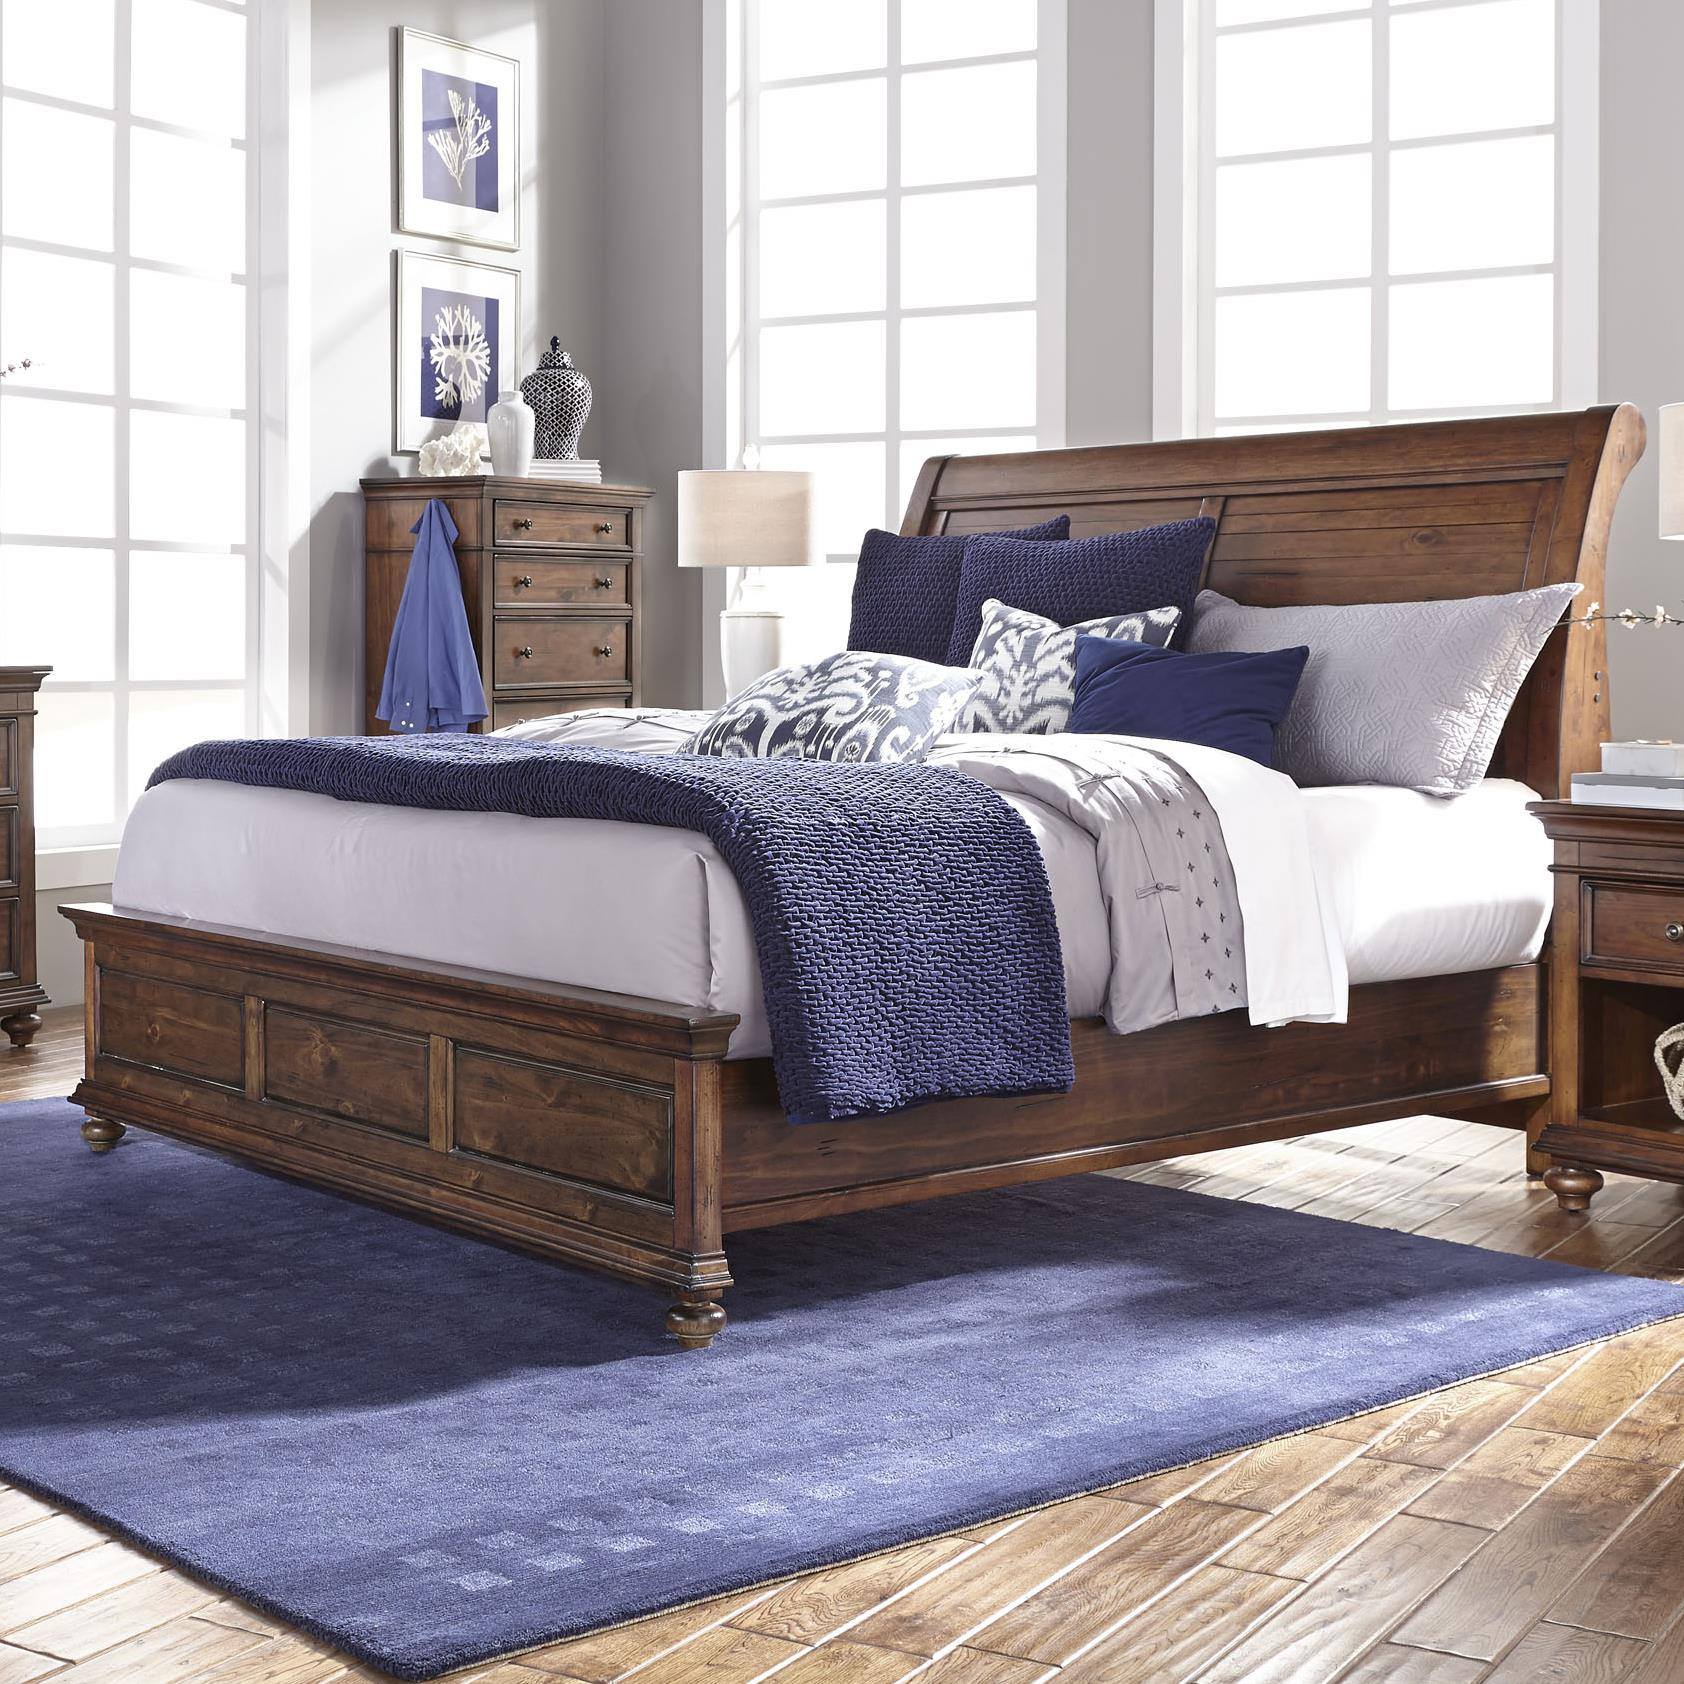 Aspenhome Camden King Sleigh Bed - Item Number: I57-404+407+406